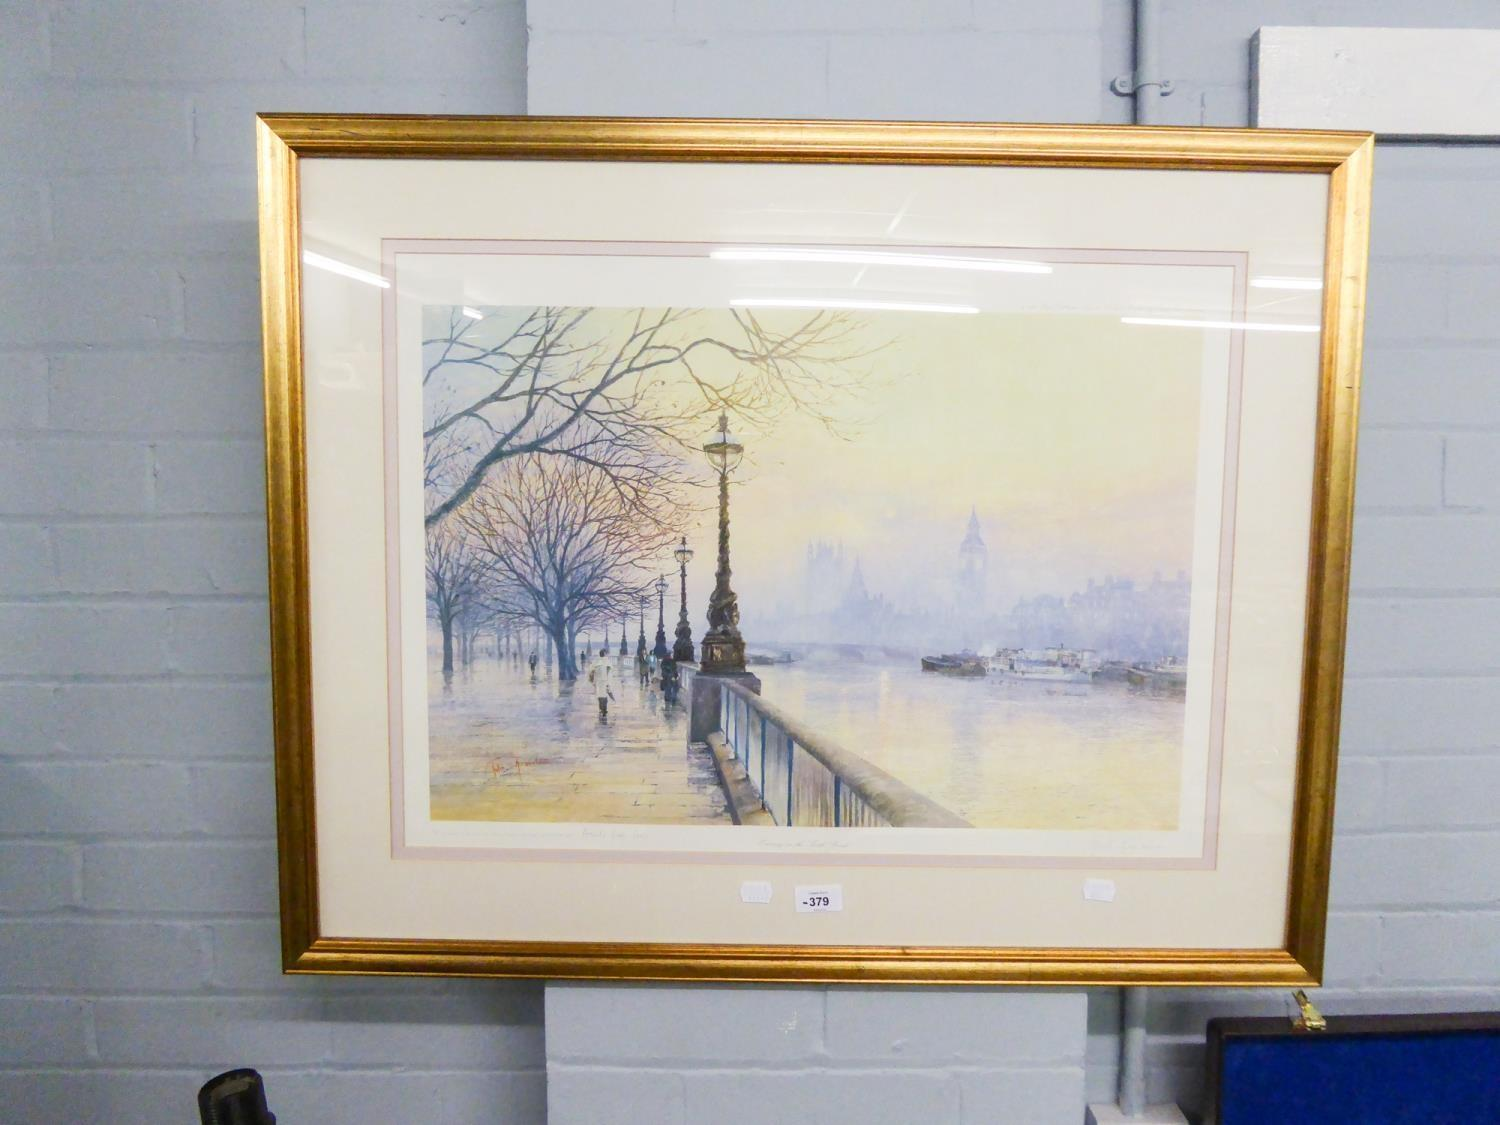 Lot 379 - JOHN F. DONALDSON ARTIST PROOF, SIGNED COLOUR PRINT REPRODUCTION EVENING ON THE SOUTH BANK SIGNED IN